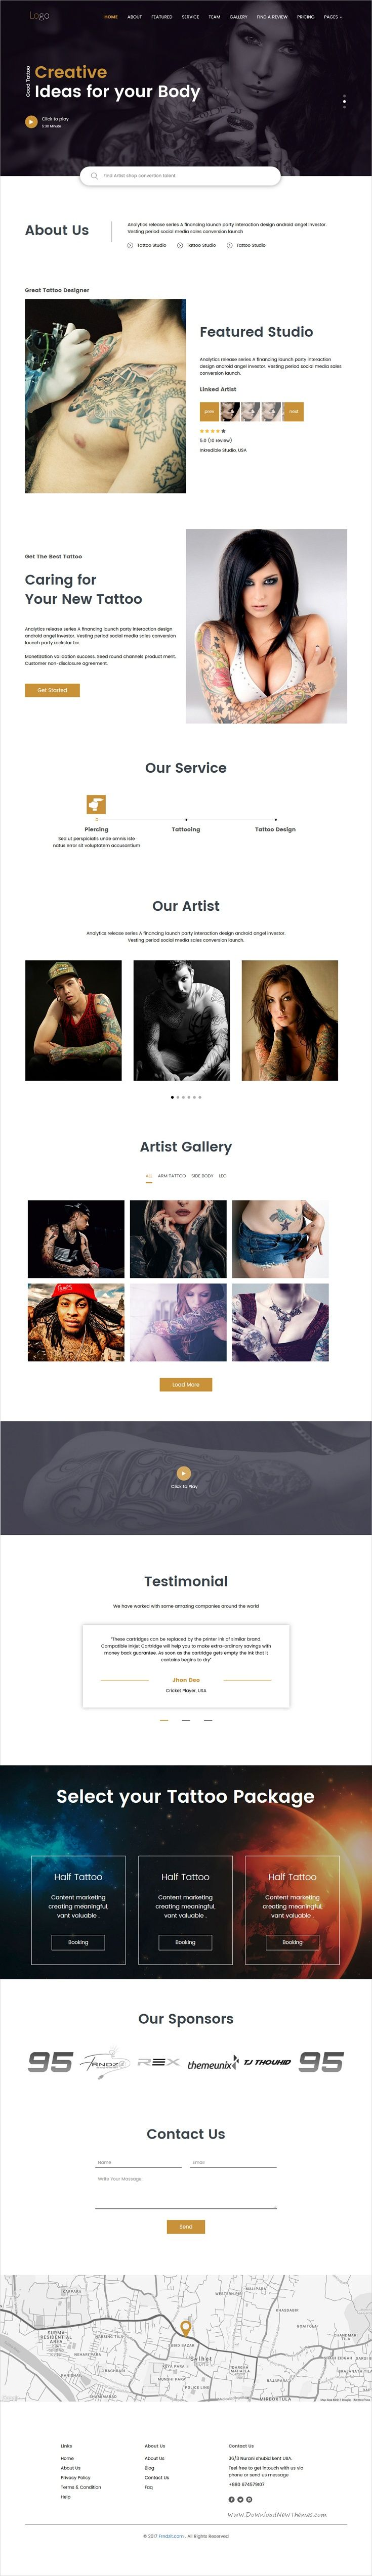 Tattoo zone is a clean & modern design responsive HTML #bootstrap theme for #tattoo shop, #barbershop or design agencies website download now➩ https://themeforest.net/item/tattoo-zone-multipurpose-html-template/19678722?ref=Datasata